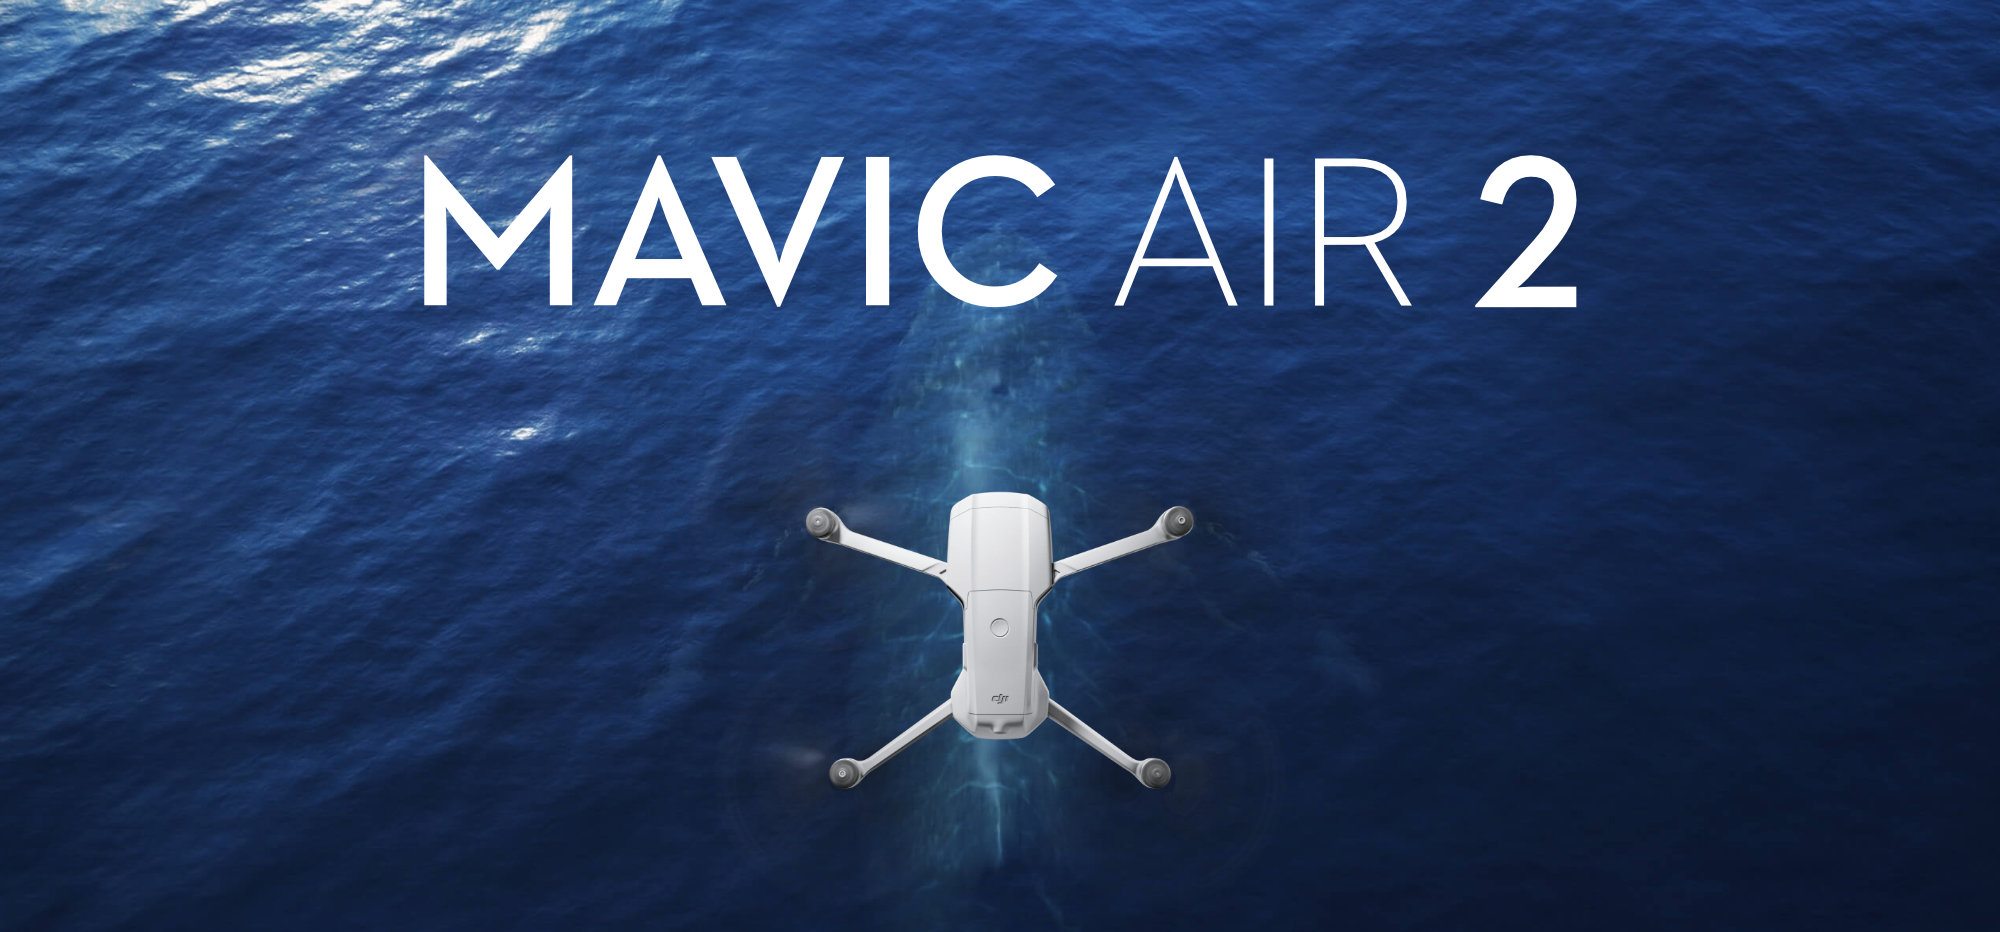 Mavic Air 2 テーマ